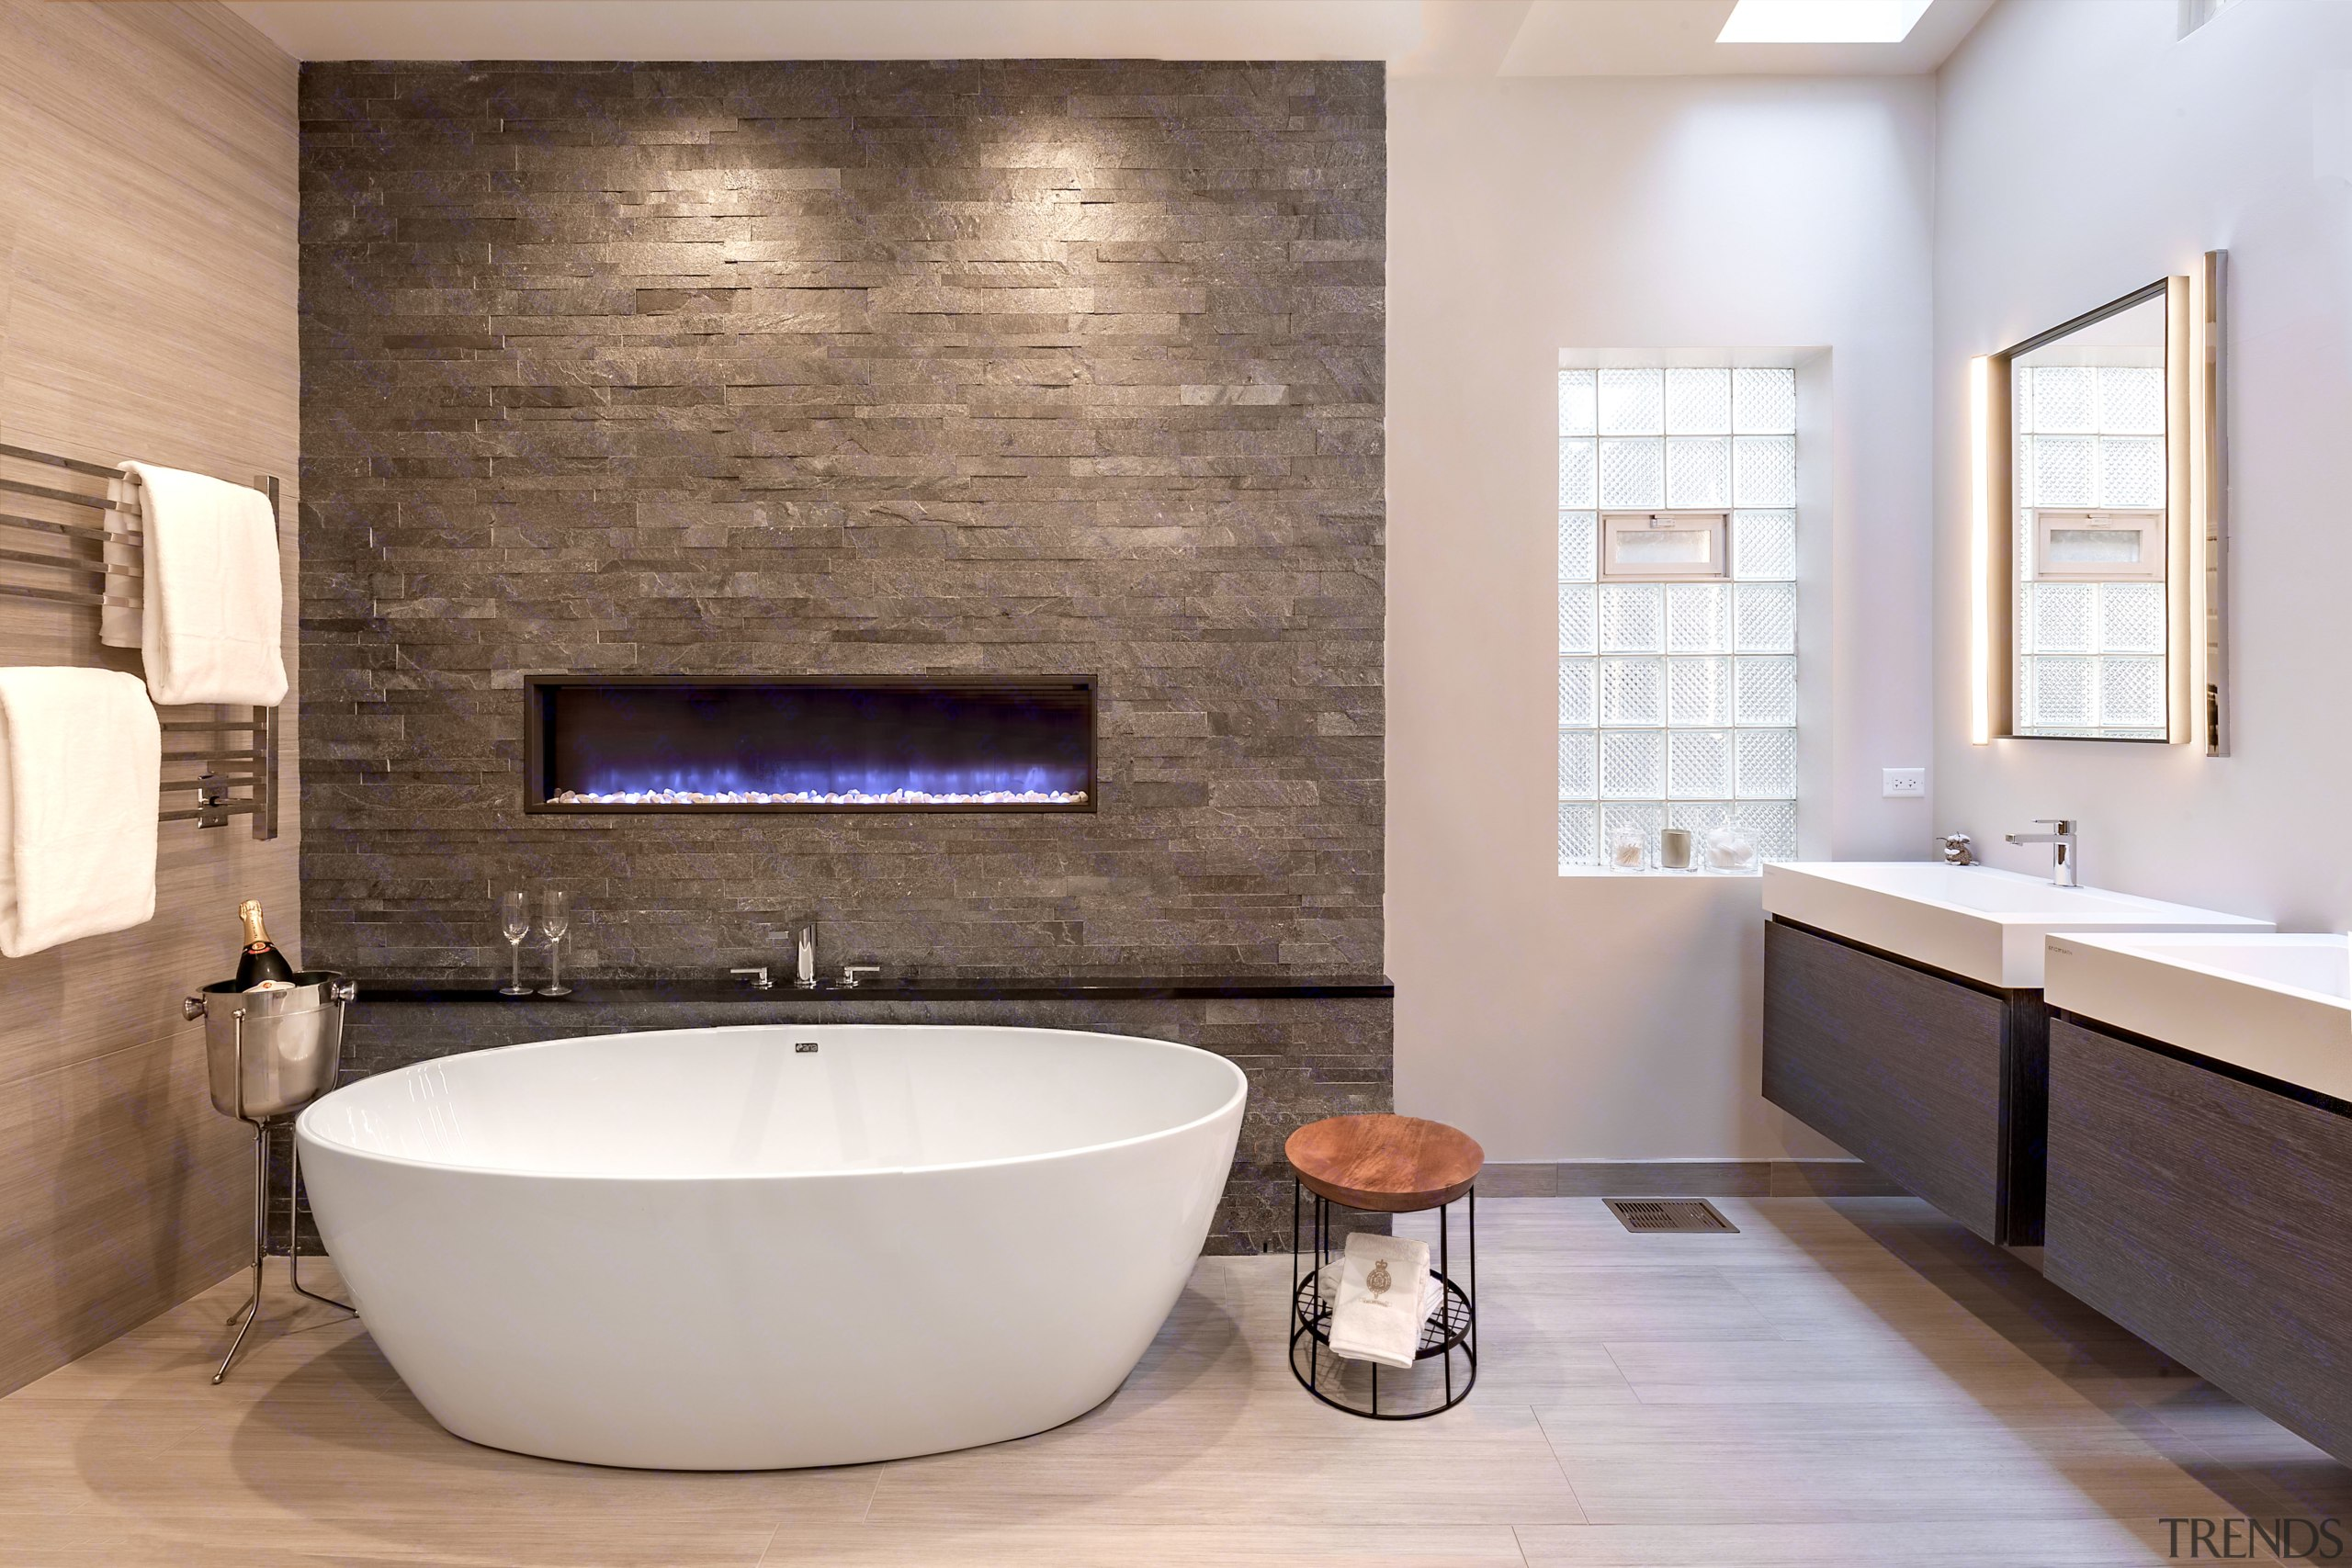 Stone Look Tiles, An Enclosed Gas Fire That Changes Colour And